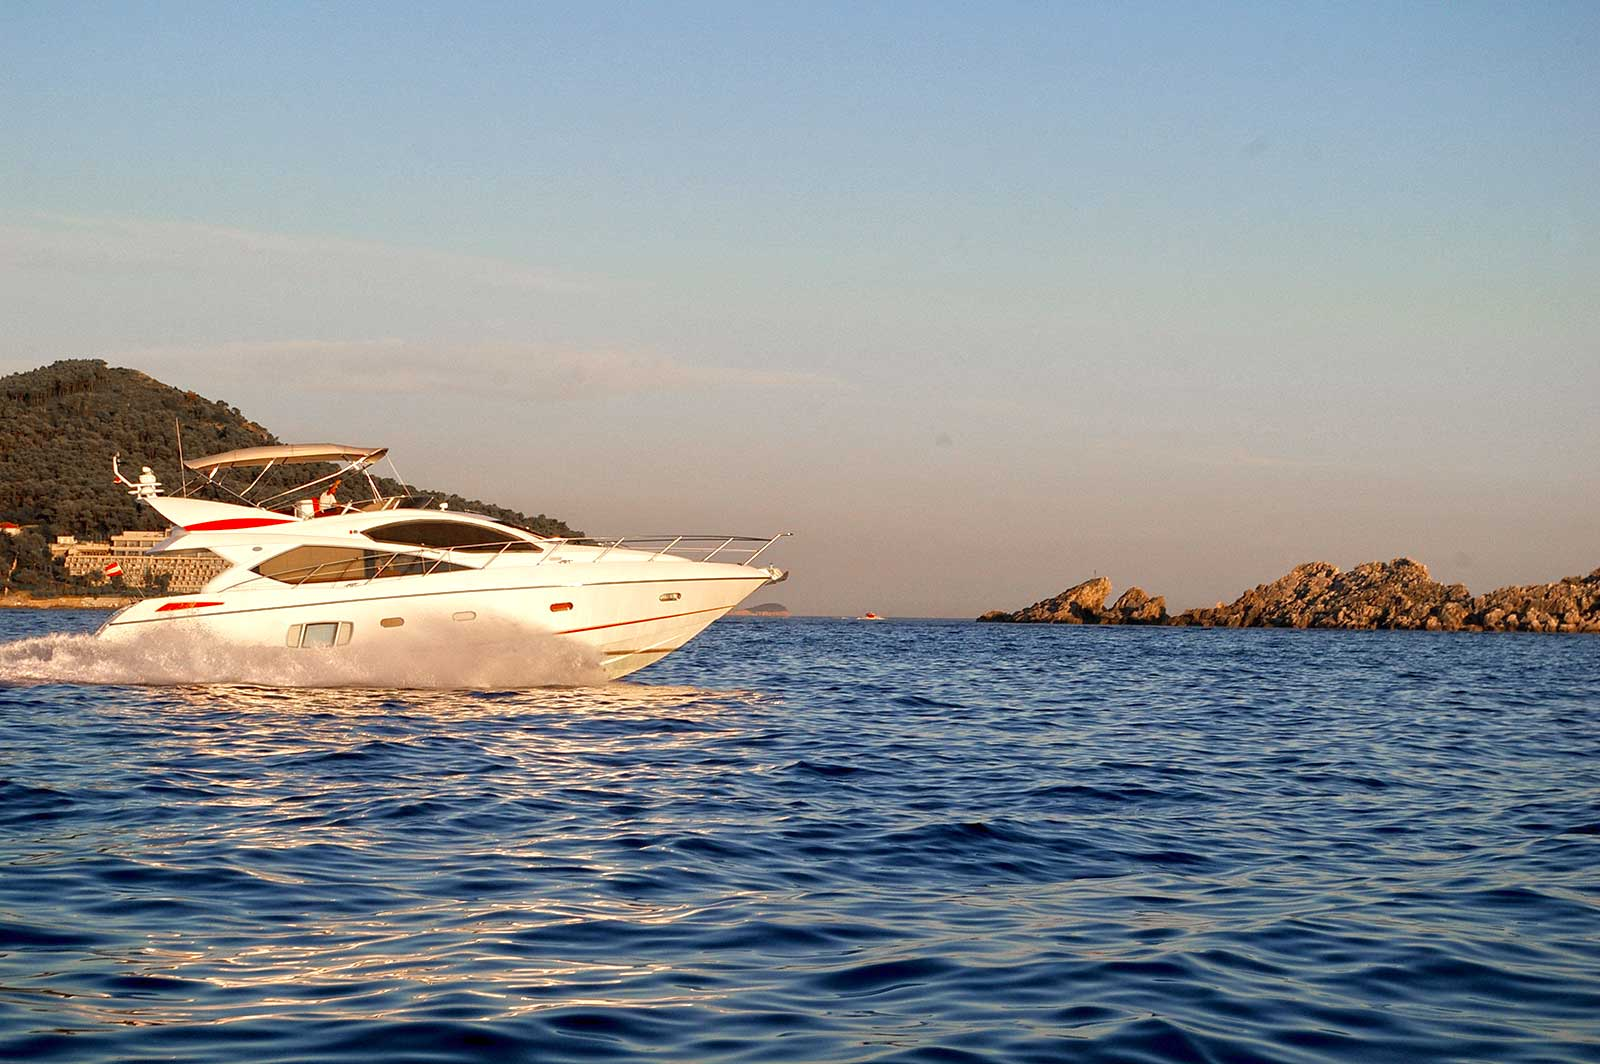 -images-excursions-elaphite-islands-speed-boat-excursion-sunseeker-charter-dubrovnik.jpg